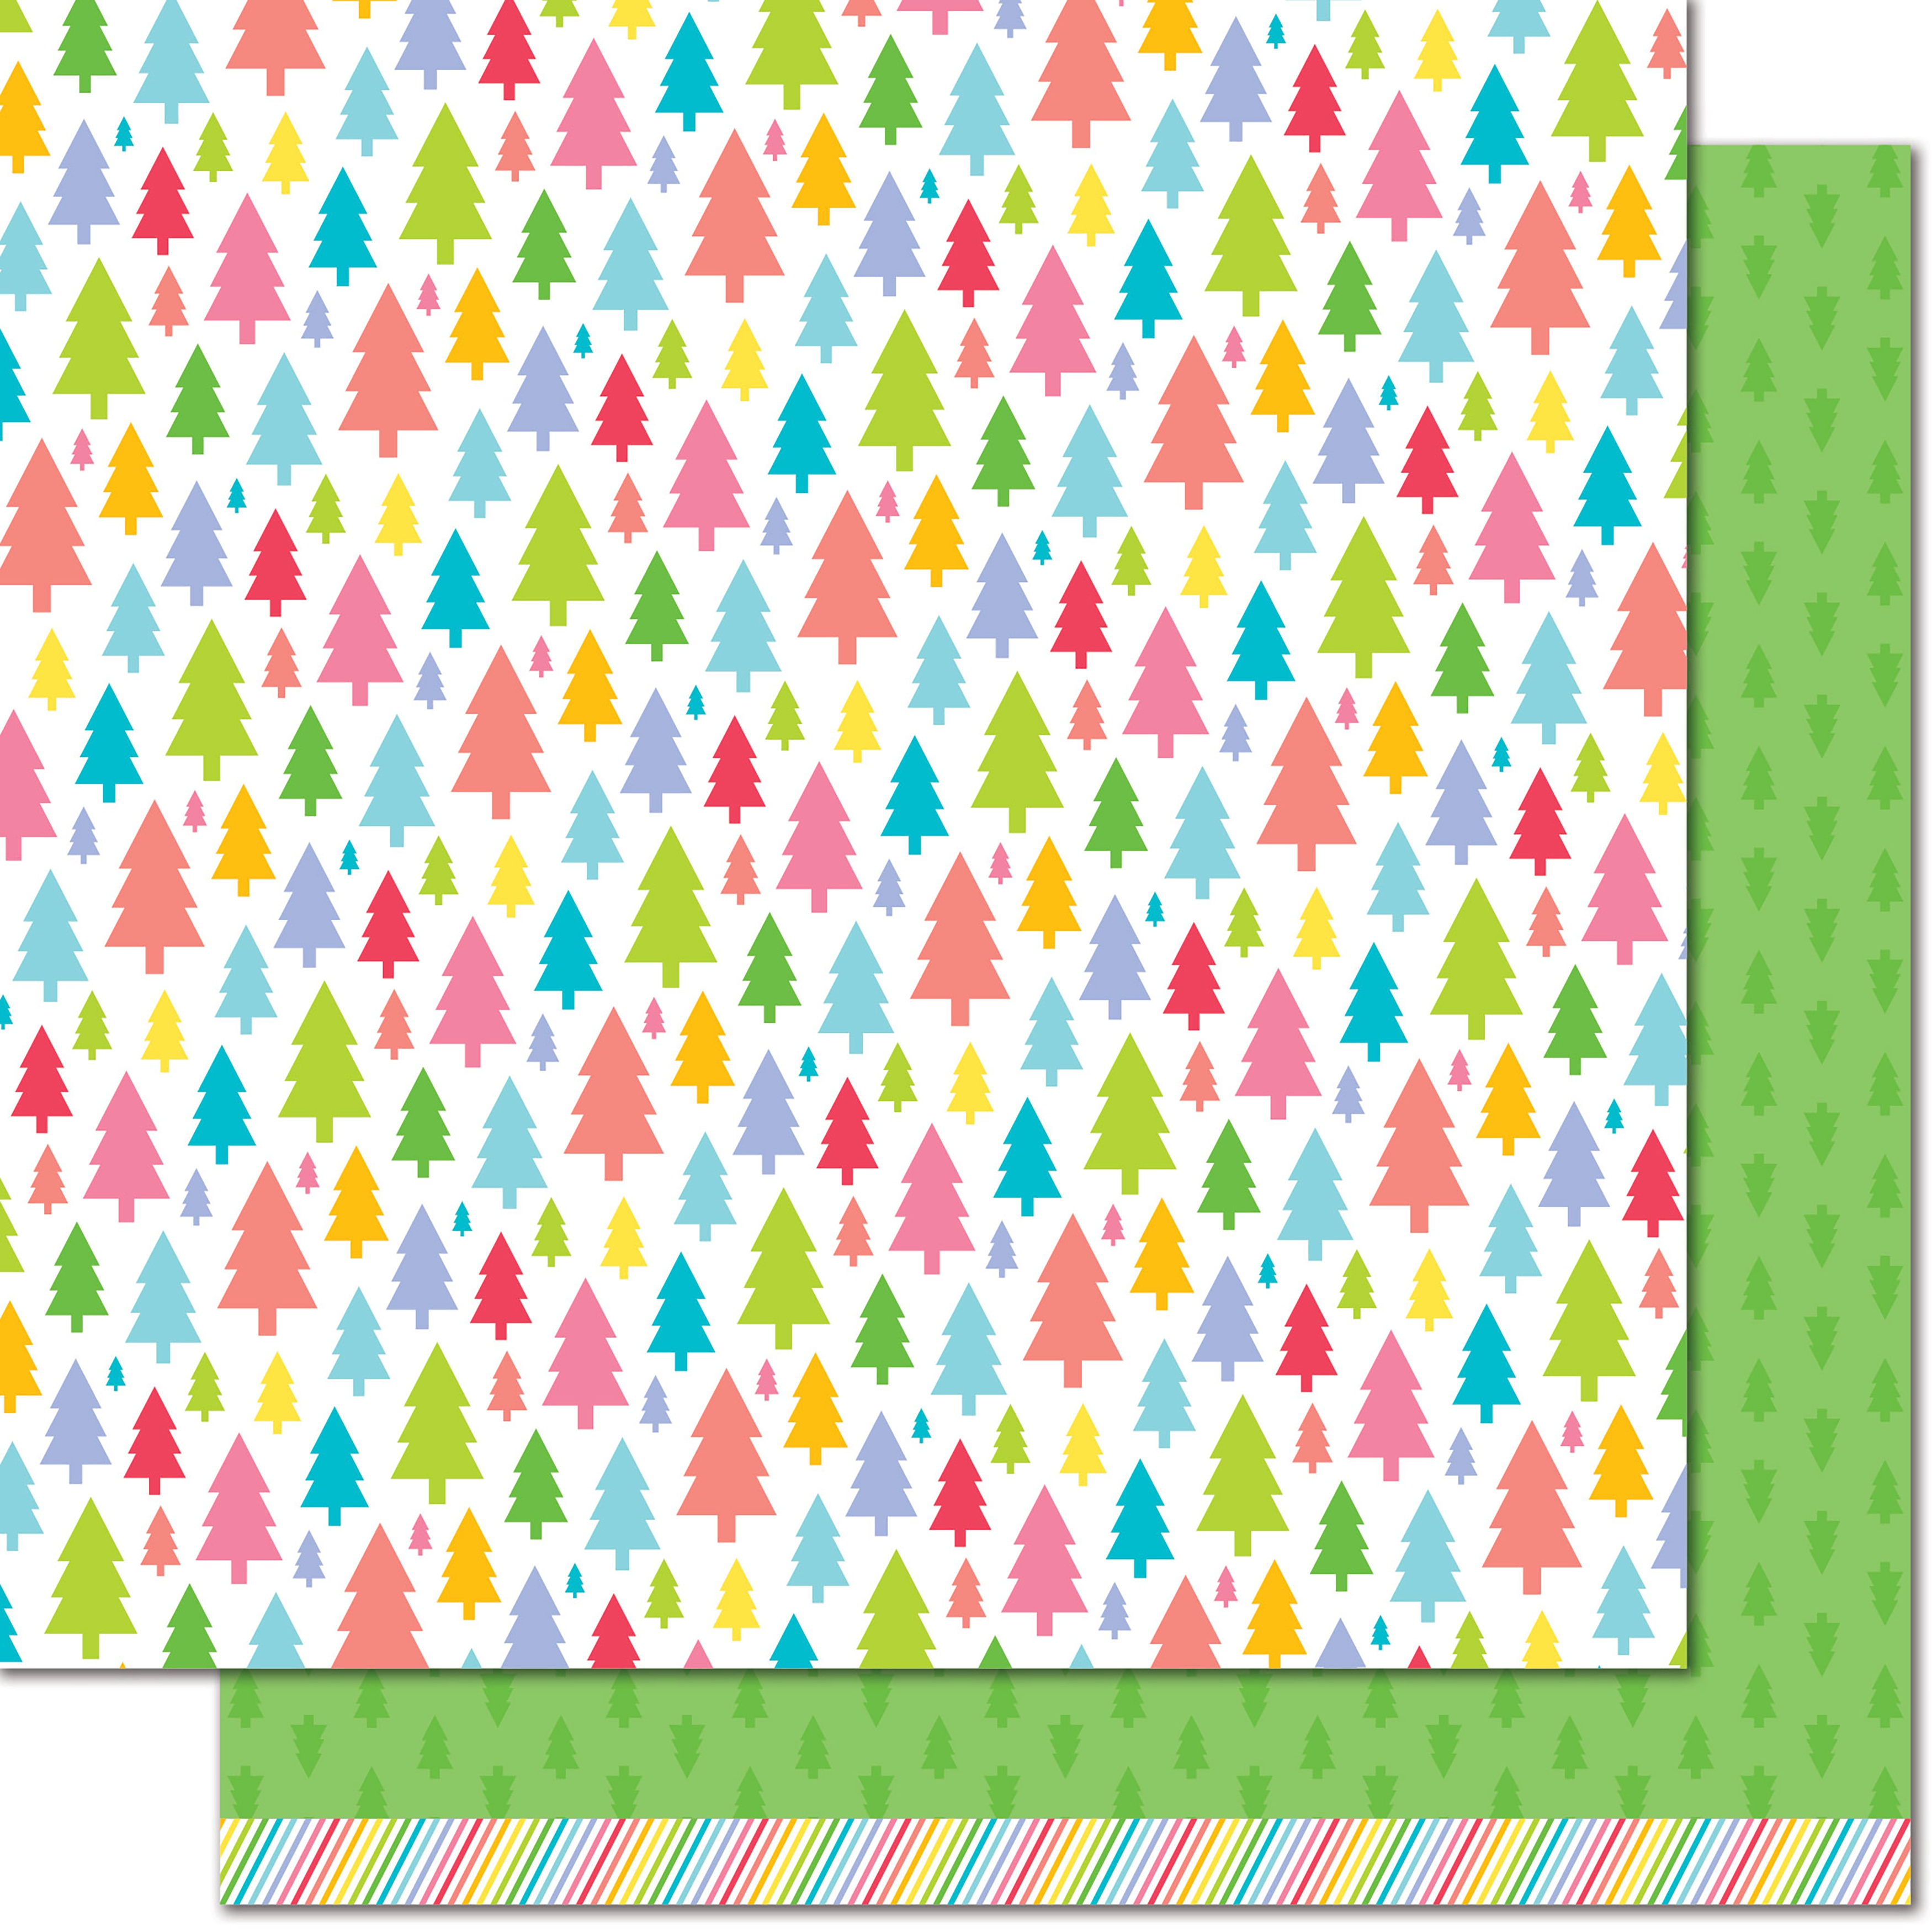 Lawn Fawn - Really Rainbow Christmas - Pine Tree Green